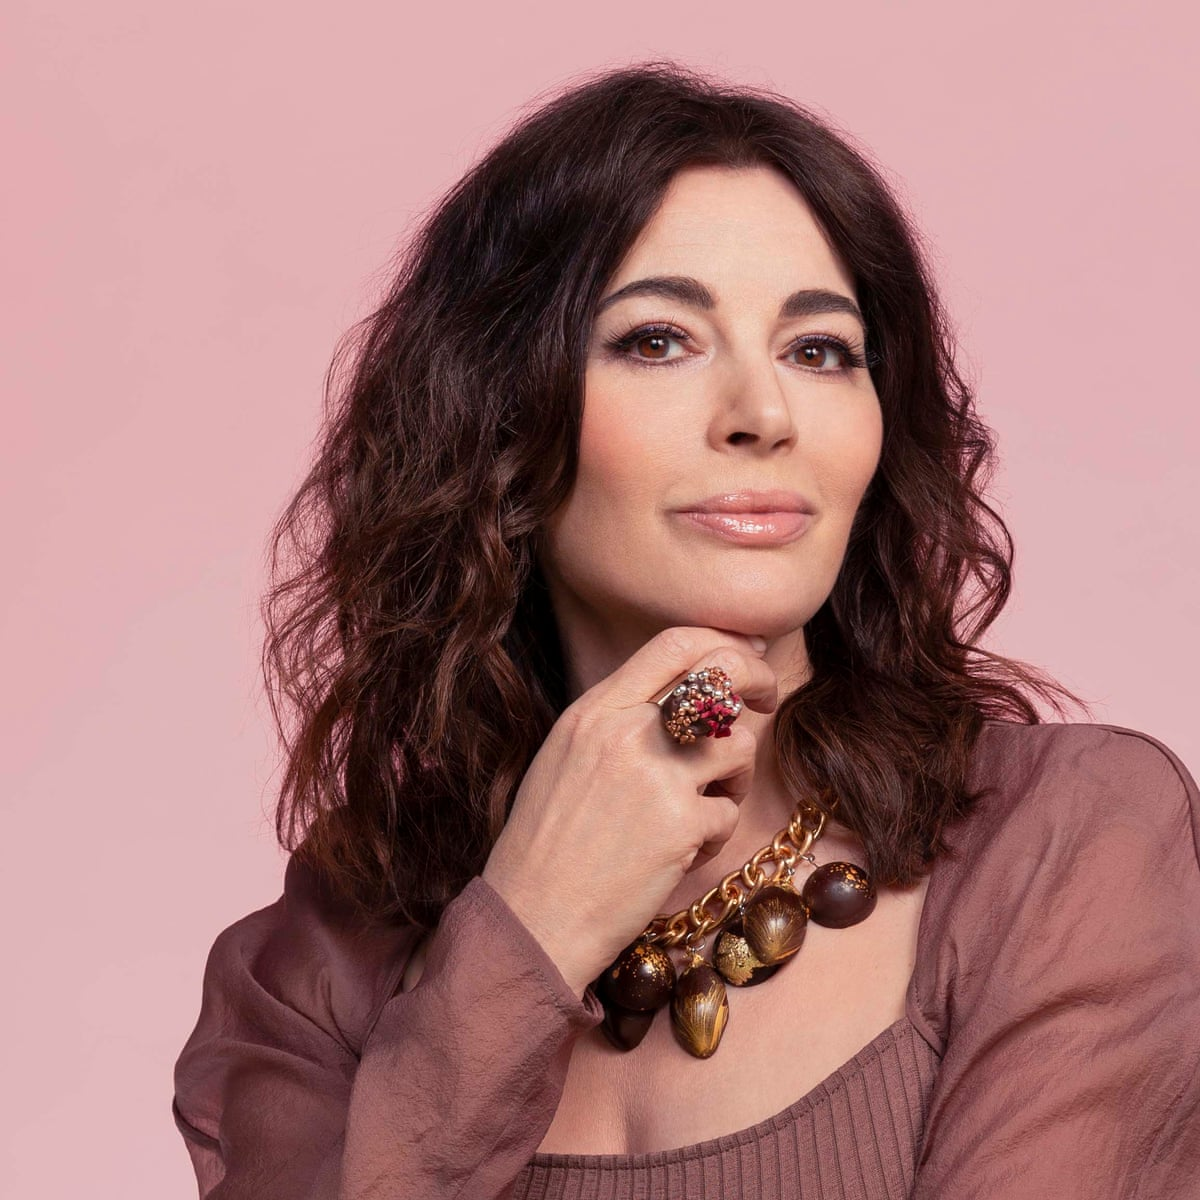 All Sorts Of Bother Nigella Lawson To Stir Up Opinion With Love For Liquorice Nigella Lawson The Guardian